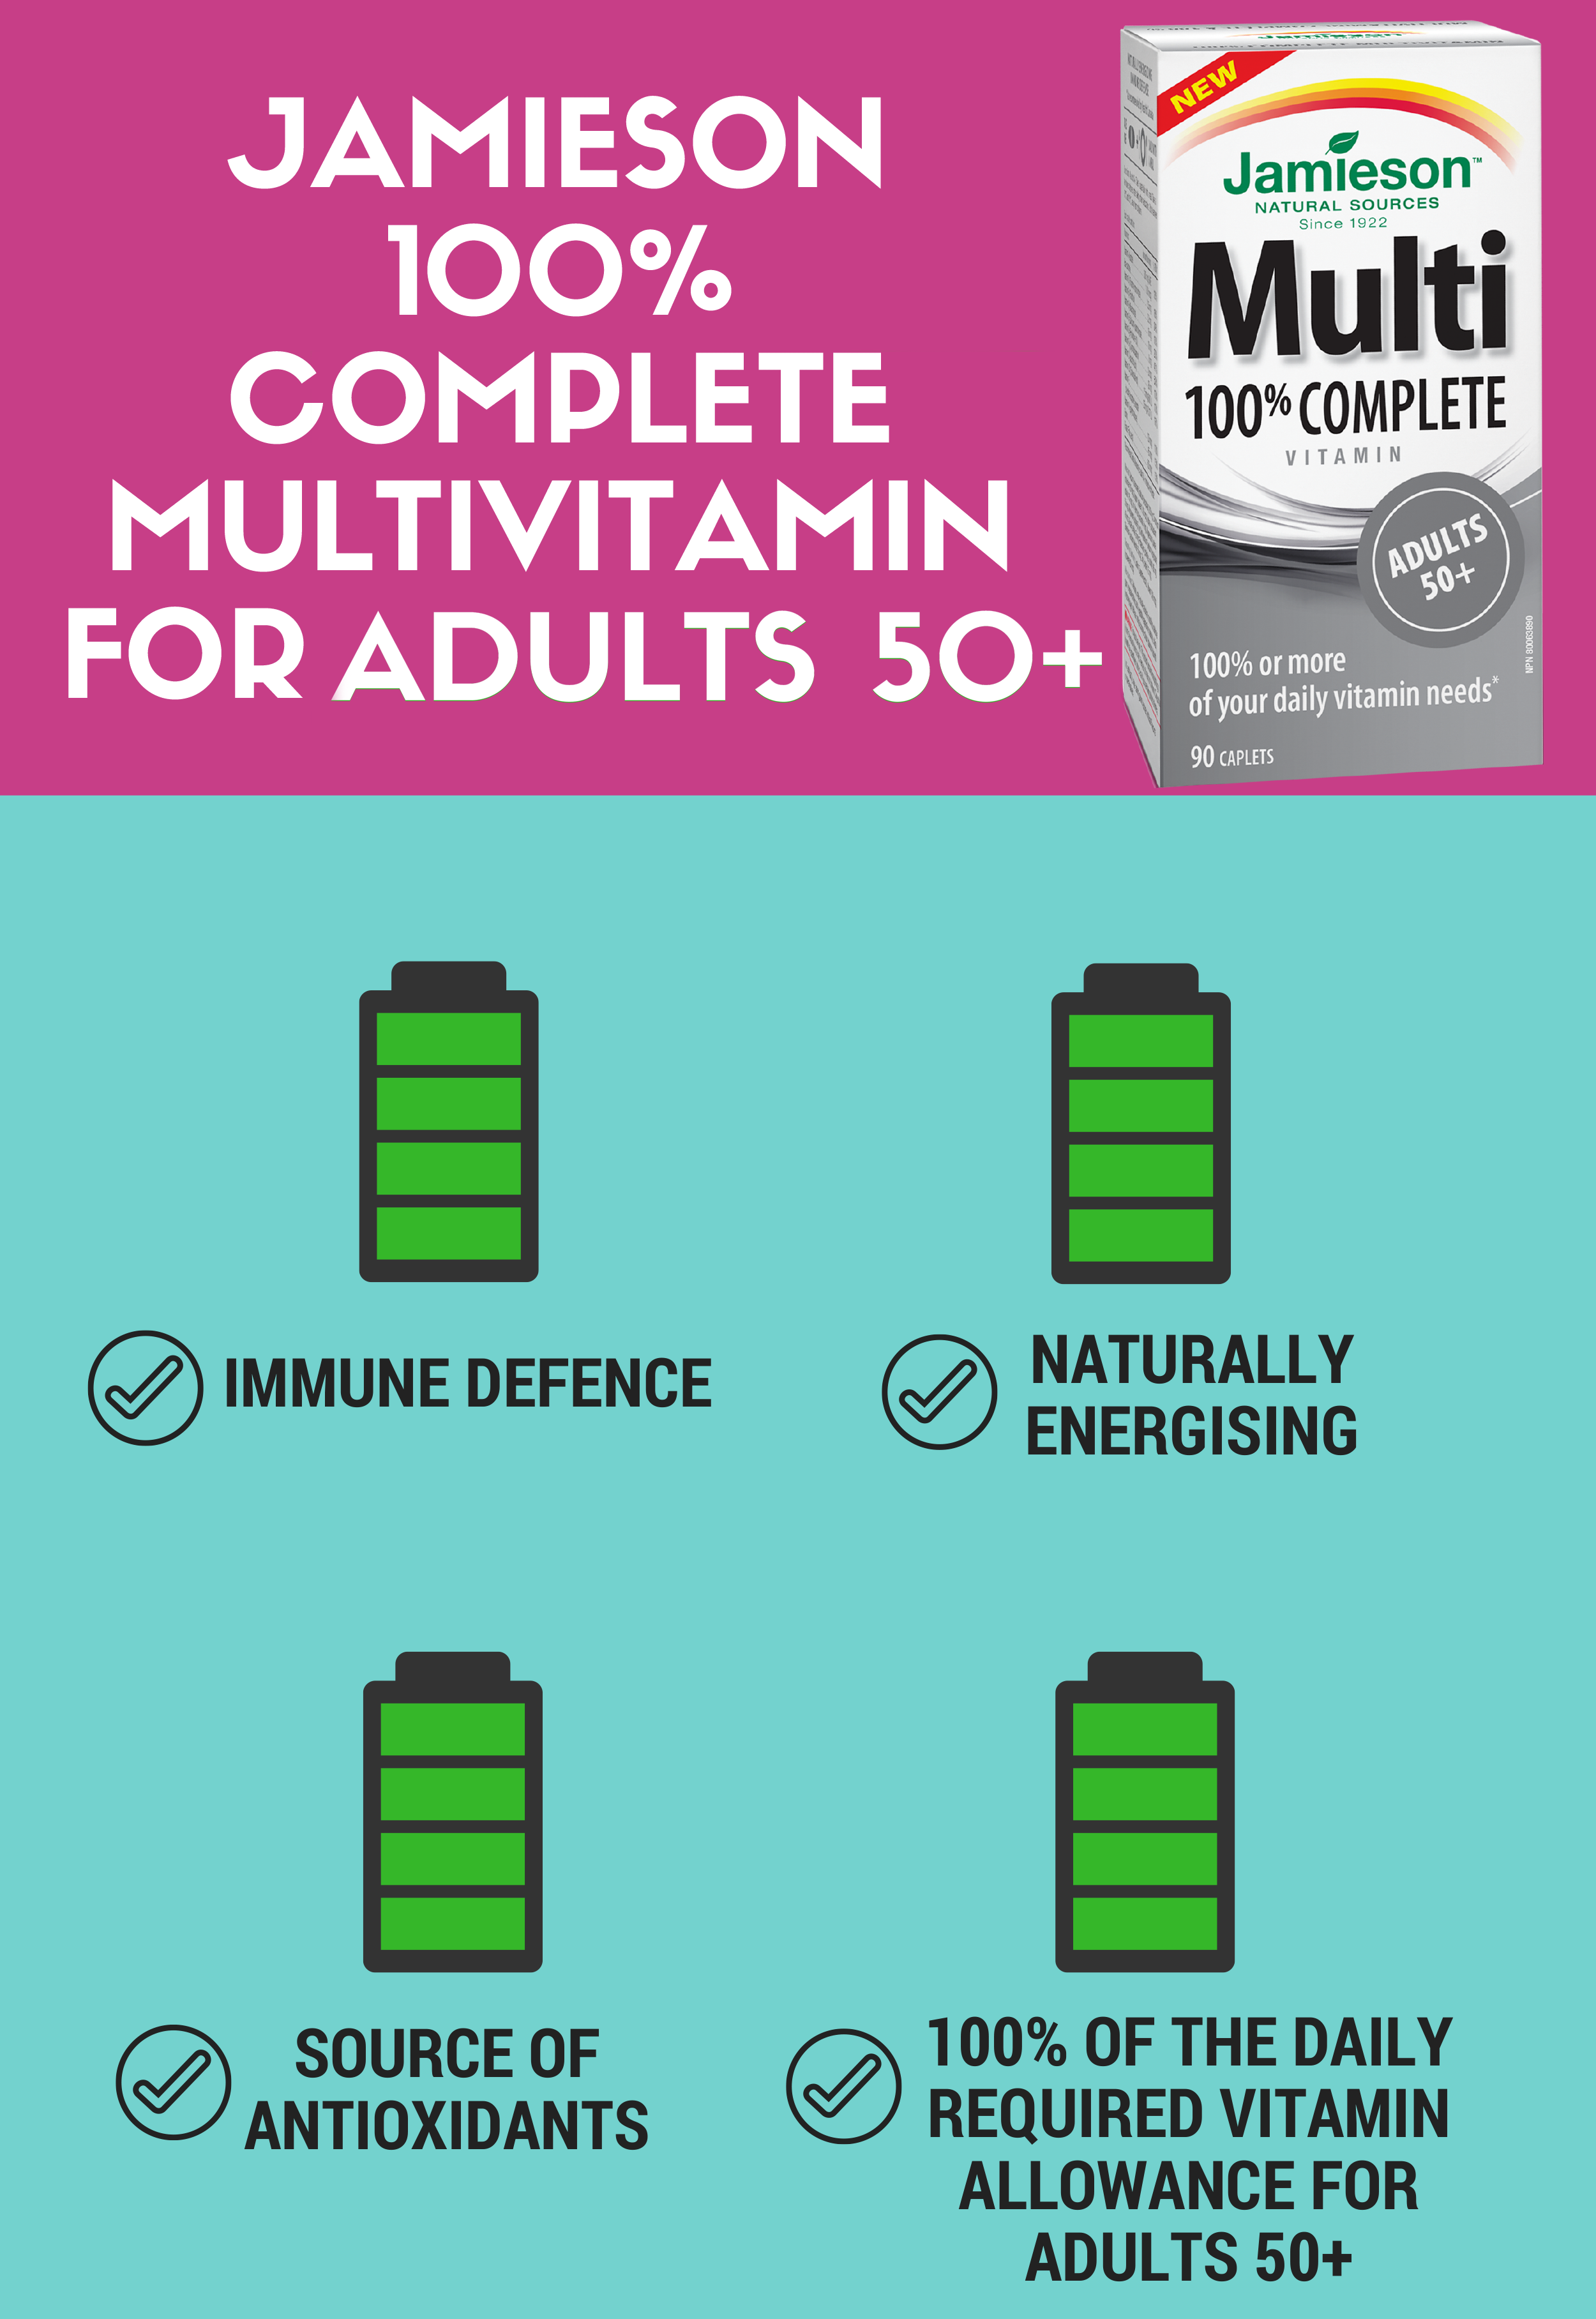 Jamieson 100% Complete Multivitamin for Adults 50+